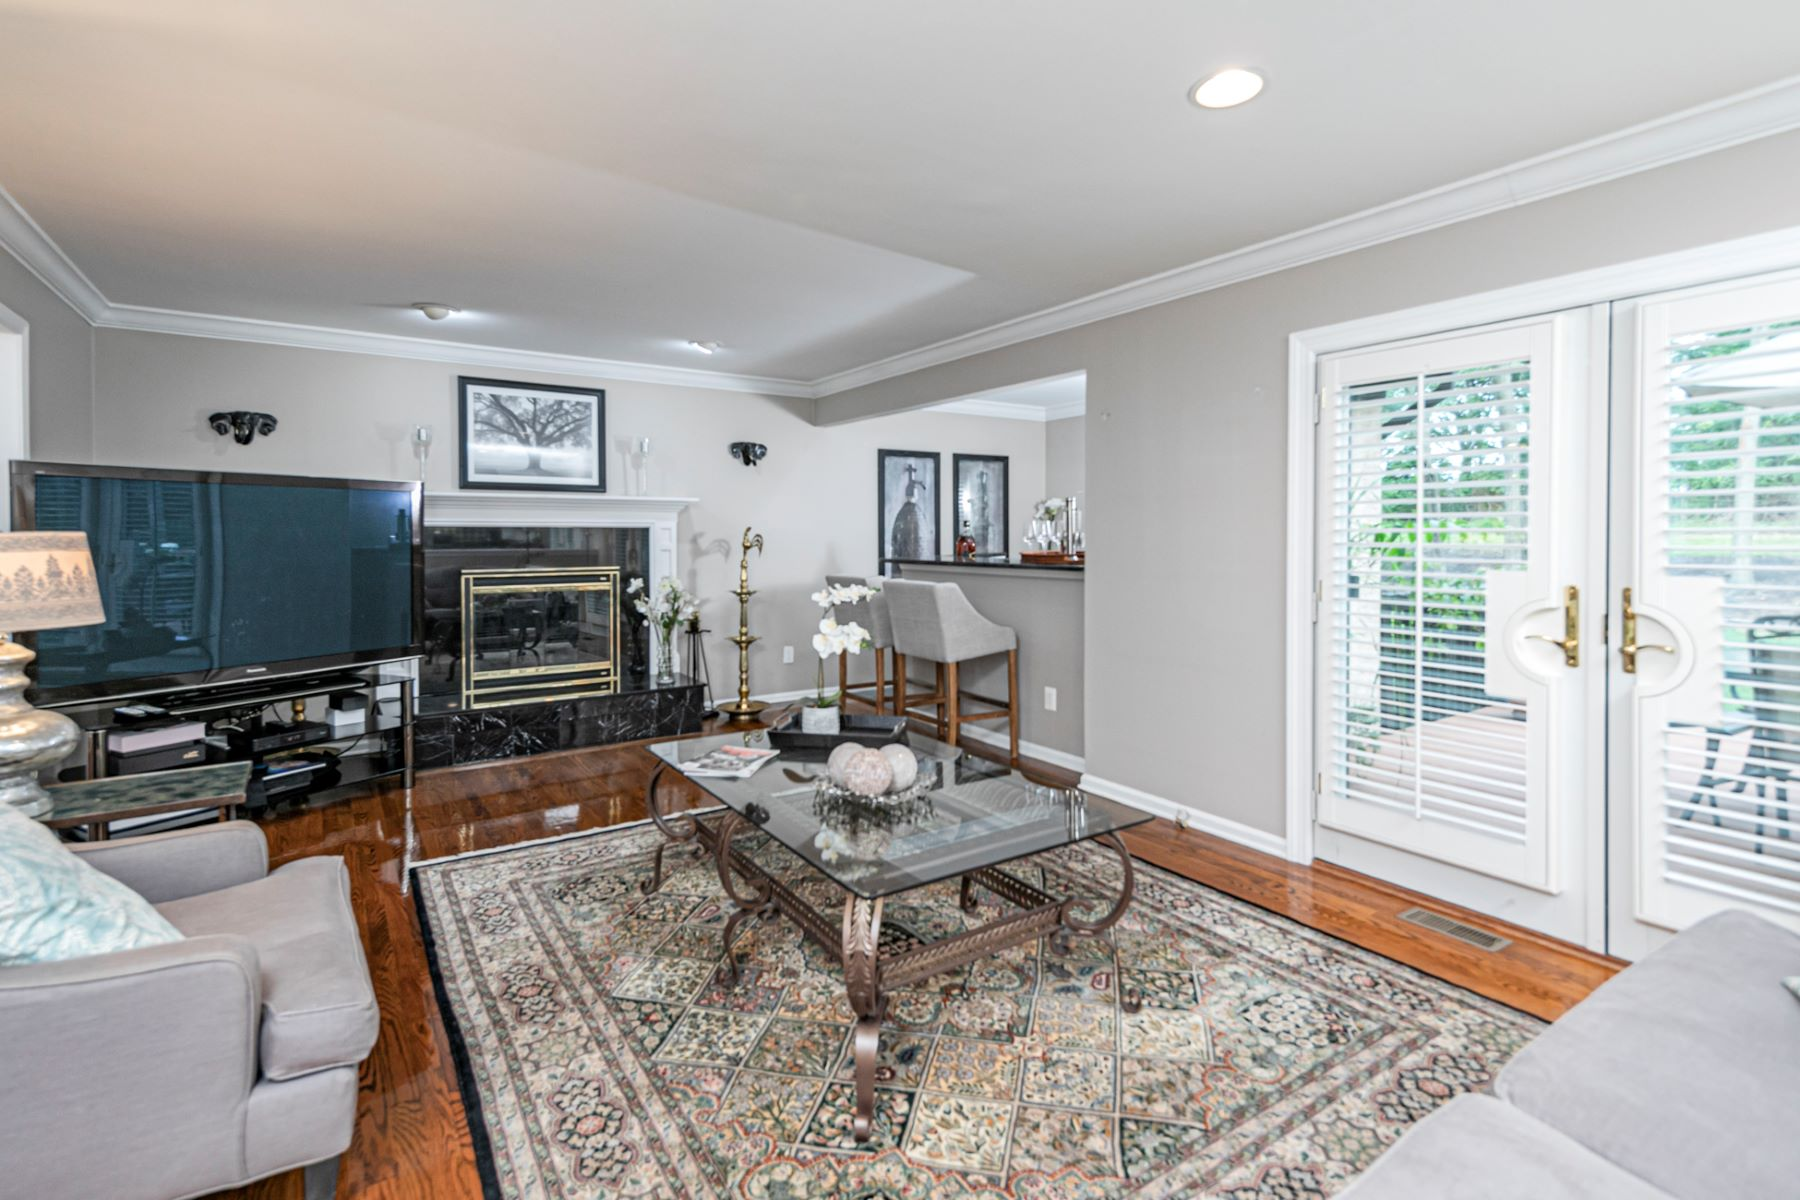 Additional photo for property listing at Captivating Tudor on a Kingsbrook Cul-De-Sac 10 North Field Court, Lawrenceville, New Jersey 08648 United States